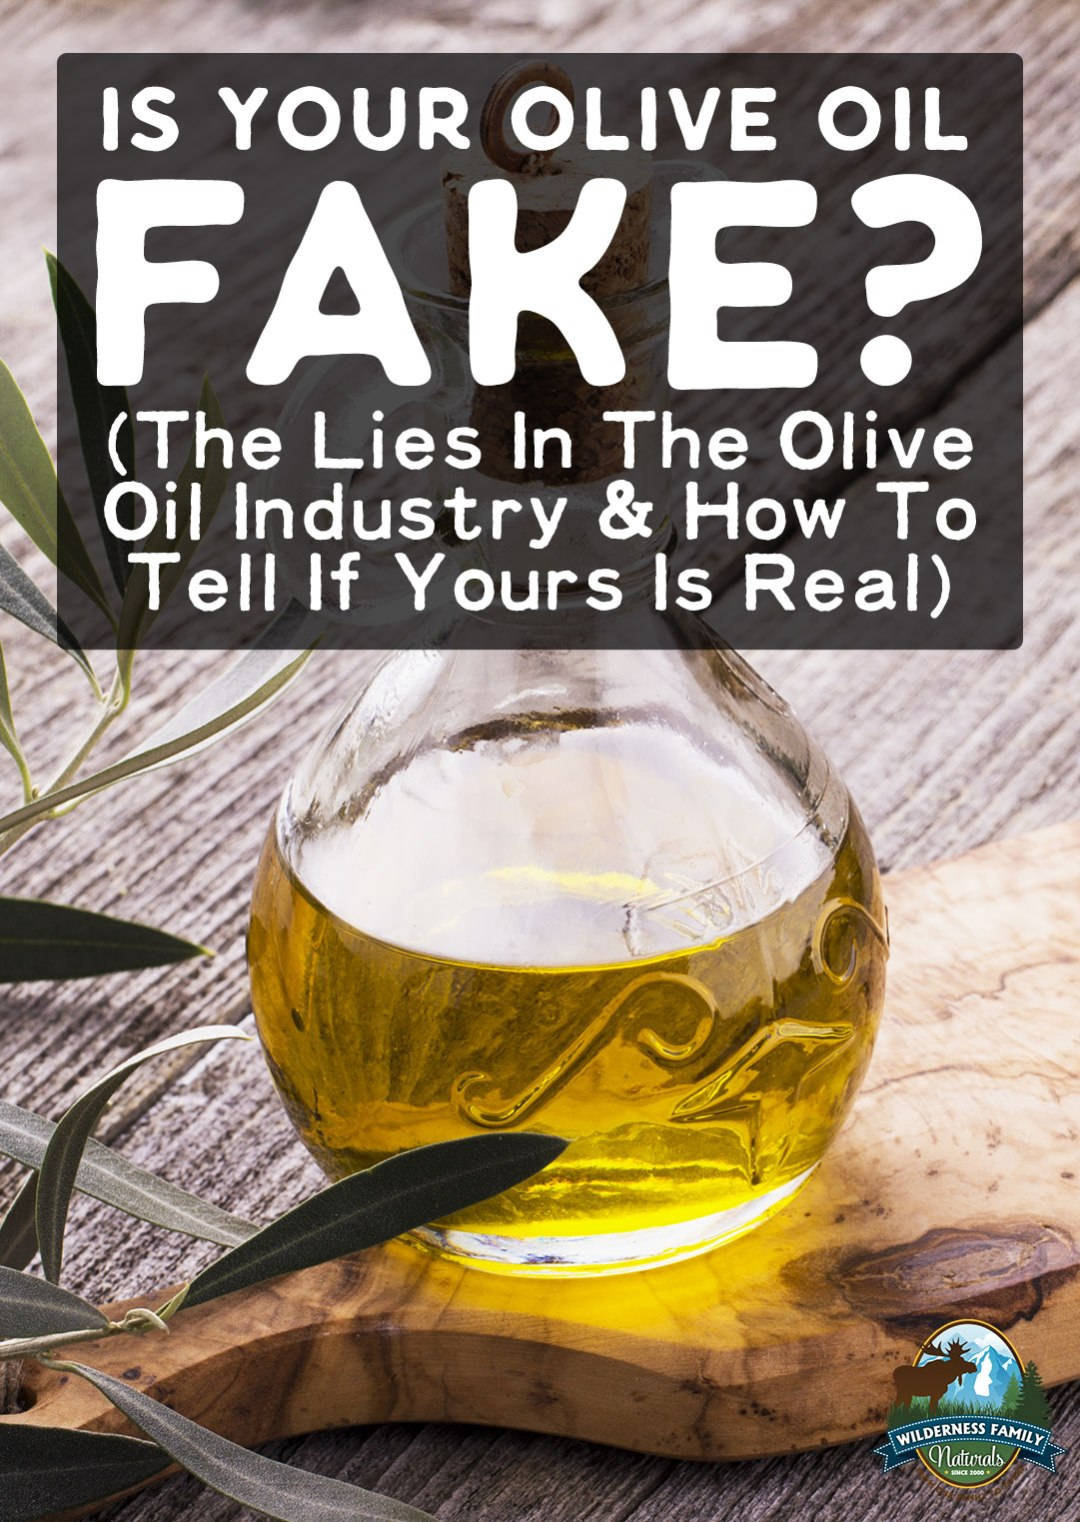 Is Your Olive Oil Fake? (The Lies In The Olive Oil Industry & How To Tell If Yours Is Real) | Let's expose the lies in the olive oil industry, including how real olive oil is cut with cheaper vegetable oils. Then, learn how to tell if your olive oil is real or an imposter. | WildernessFamilyNaturals.com